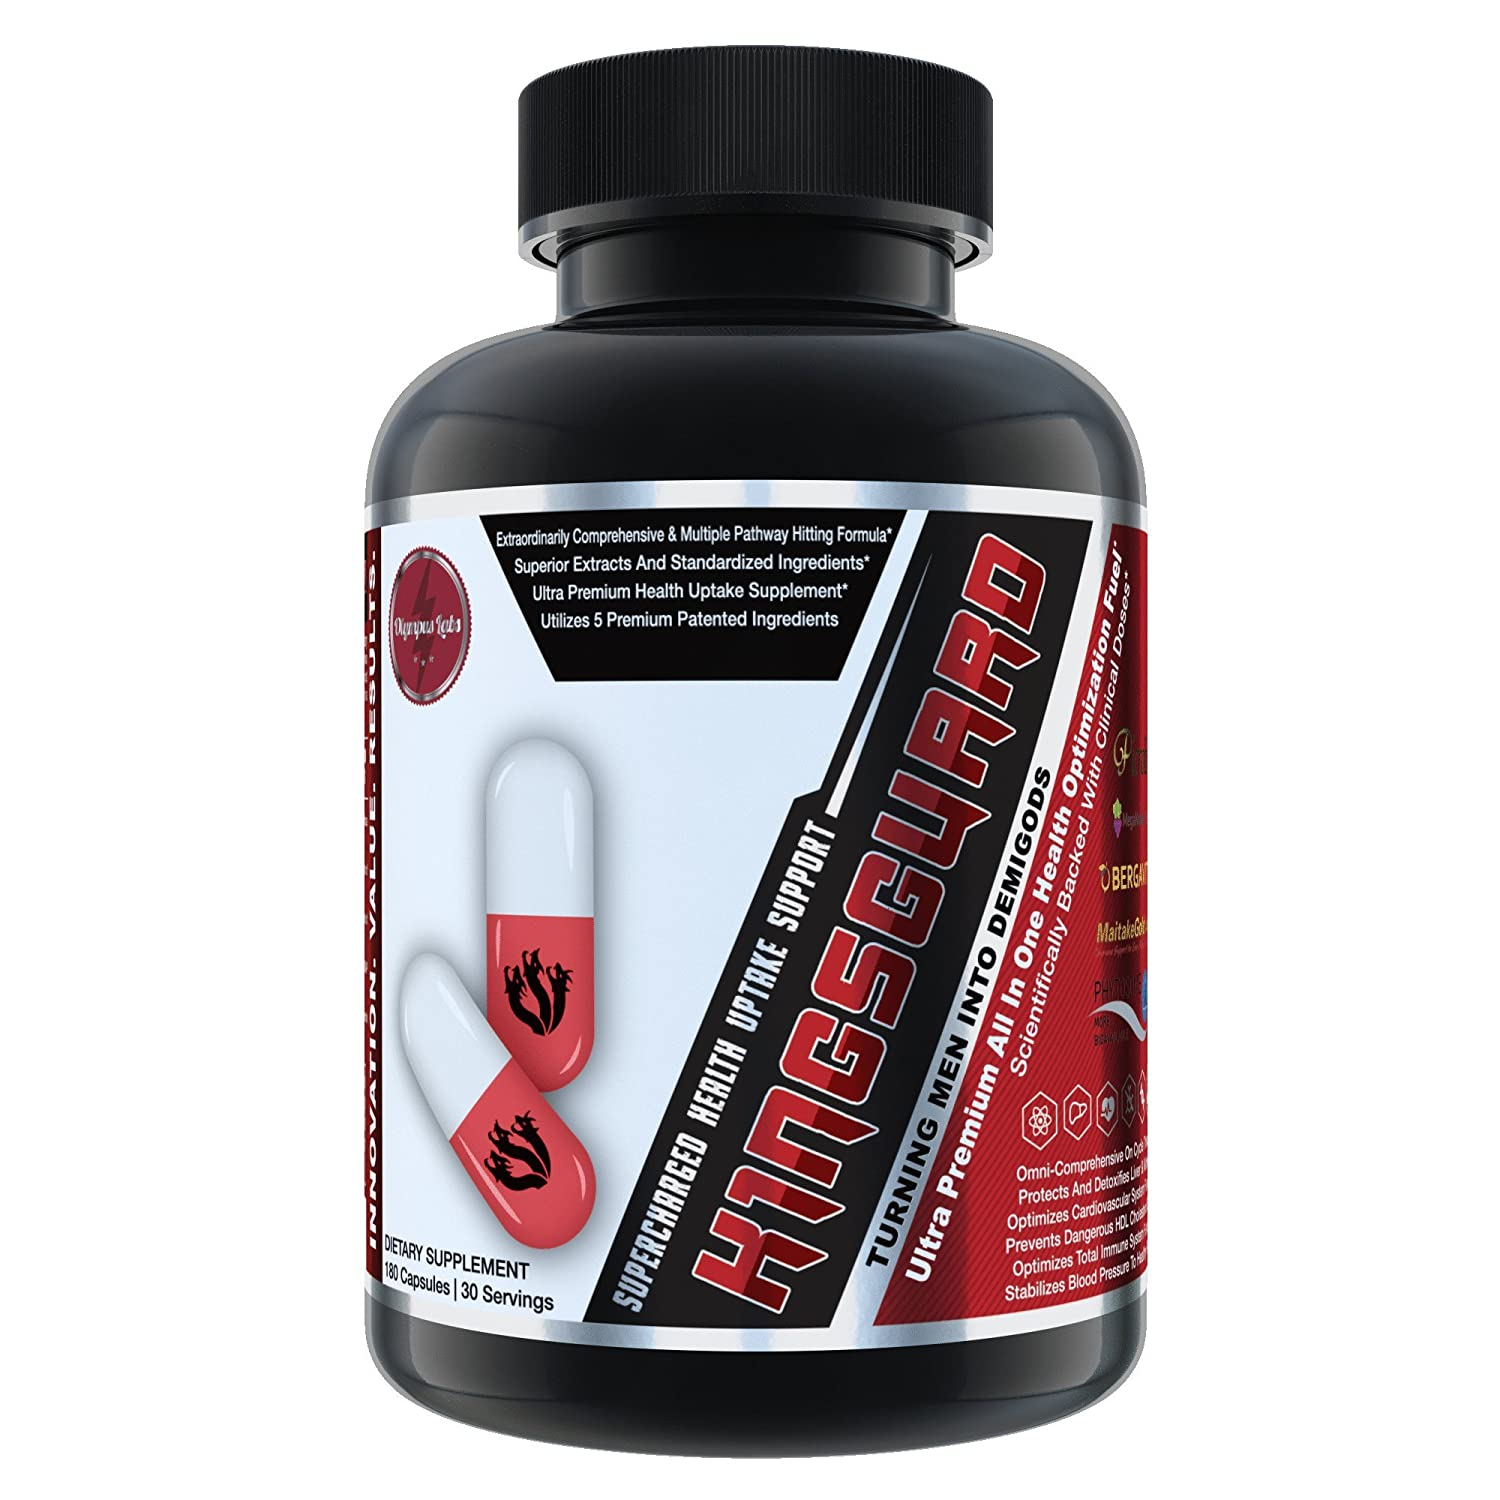 K1NGSGUARD Ultra Premium Health Optimization Support by Olympus Labs